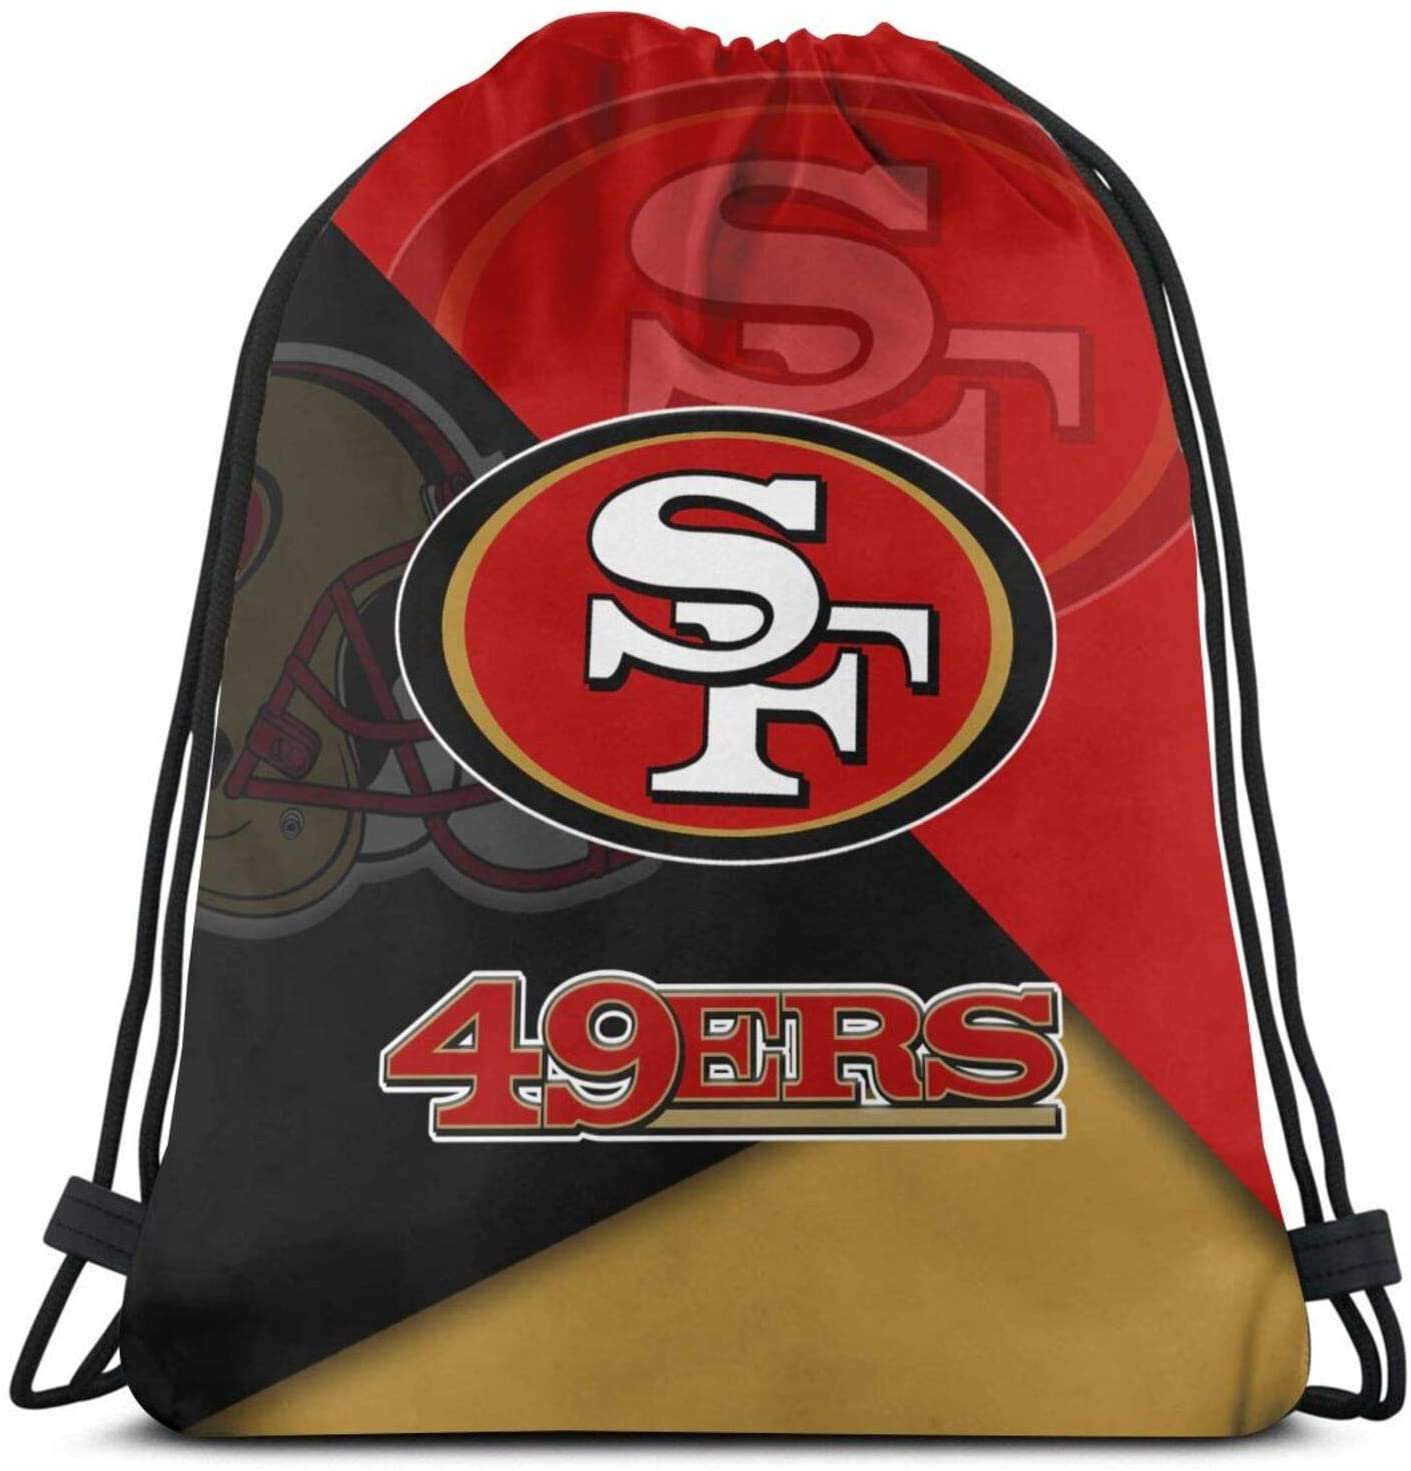 S-An Fr-Ancisco 49-Ers Drawstring Backpack String Bag Gym Bag Sackpack Cinch Water Resistant Polyester Gympack For Camping Hiking Swimming 14.2x16.9 Inch